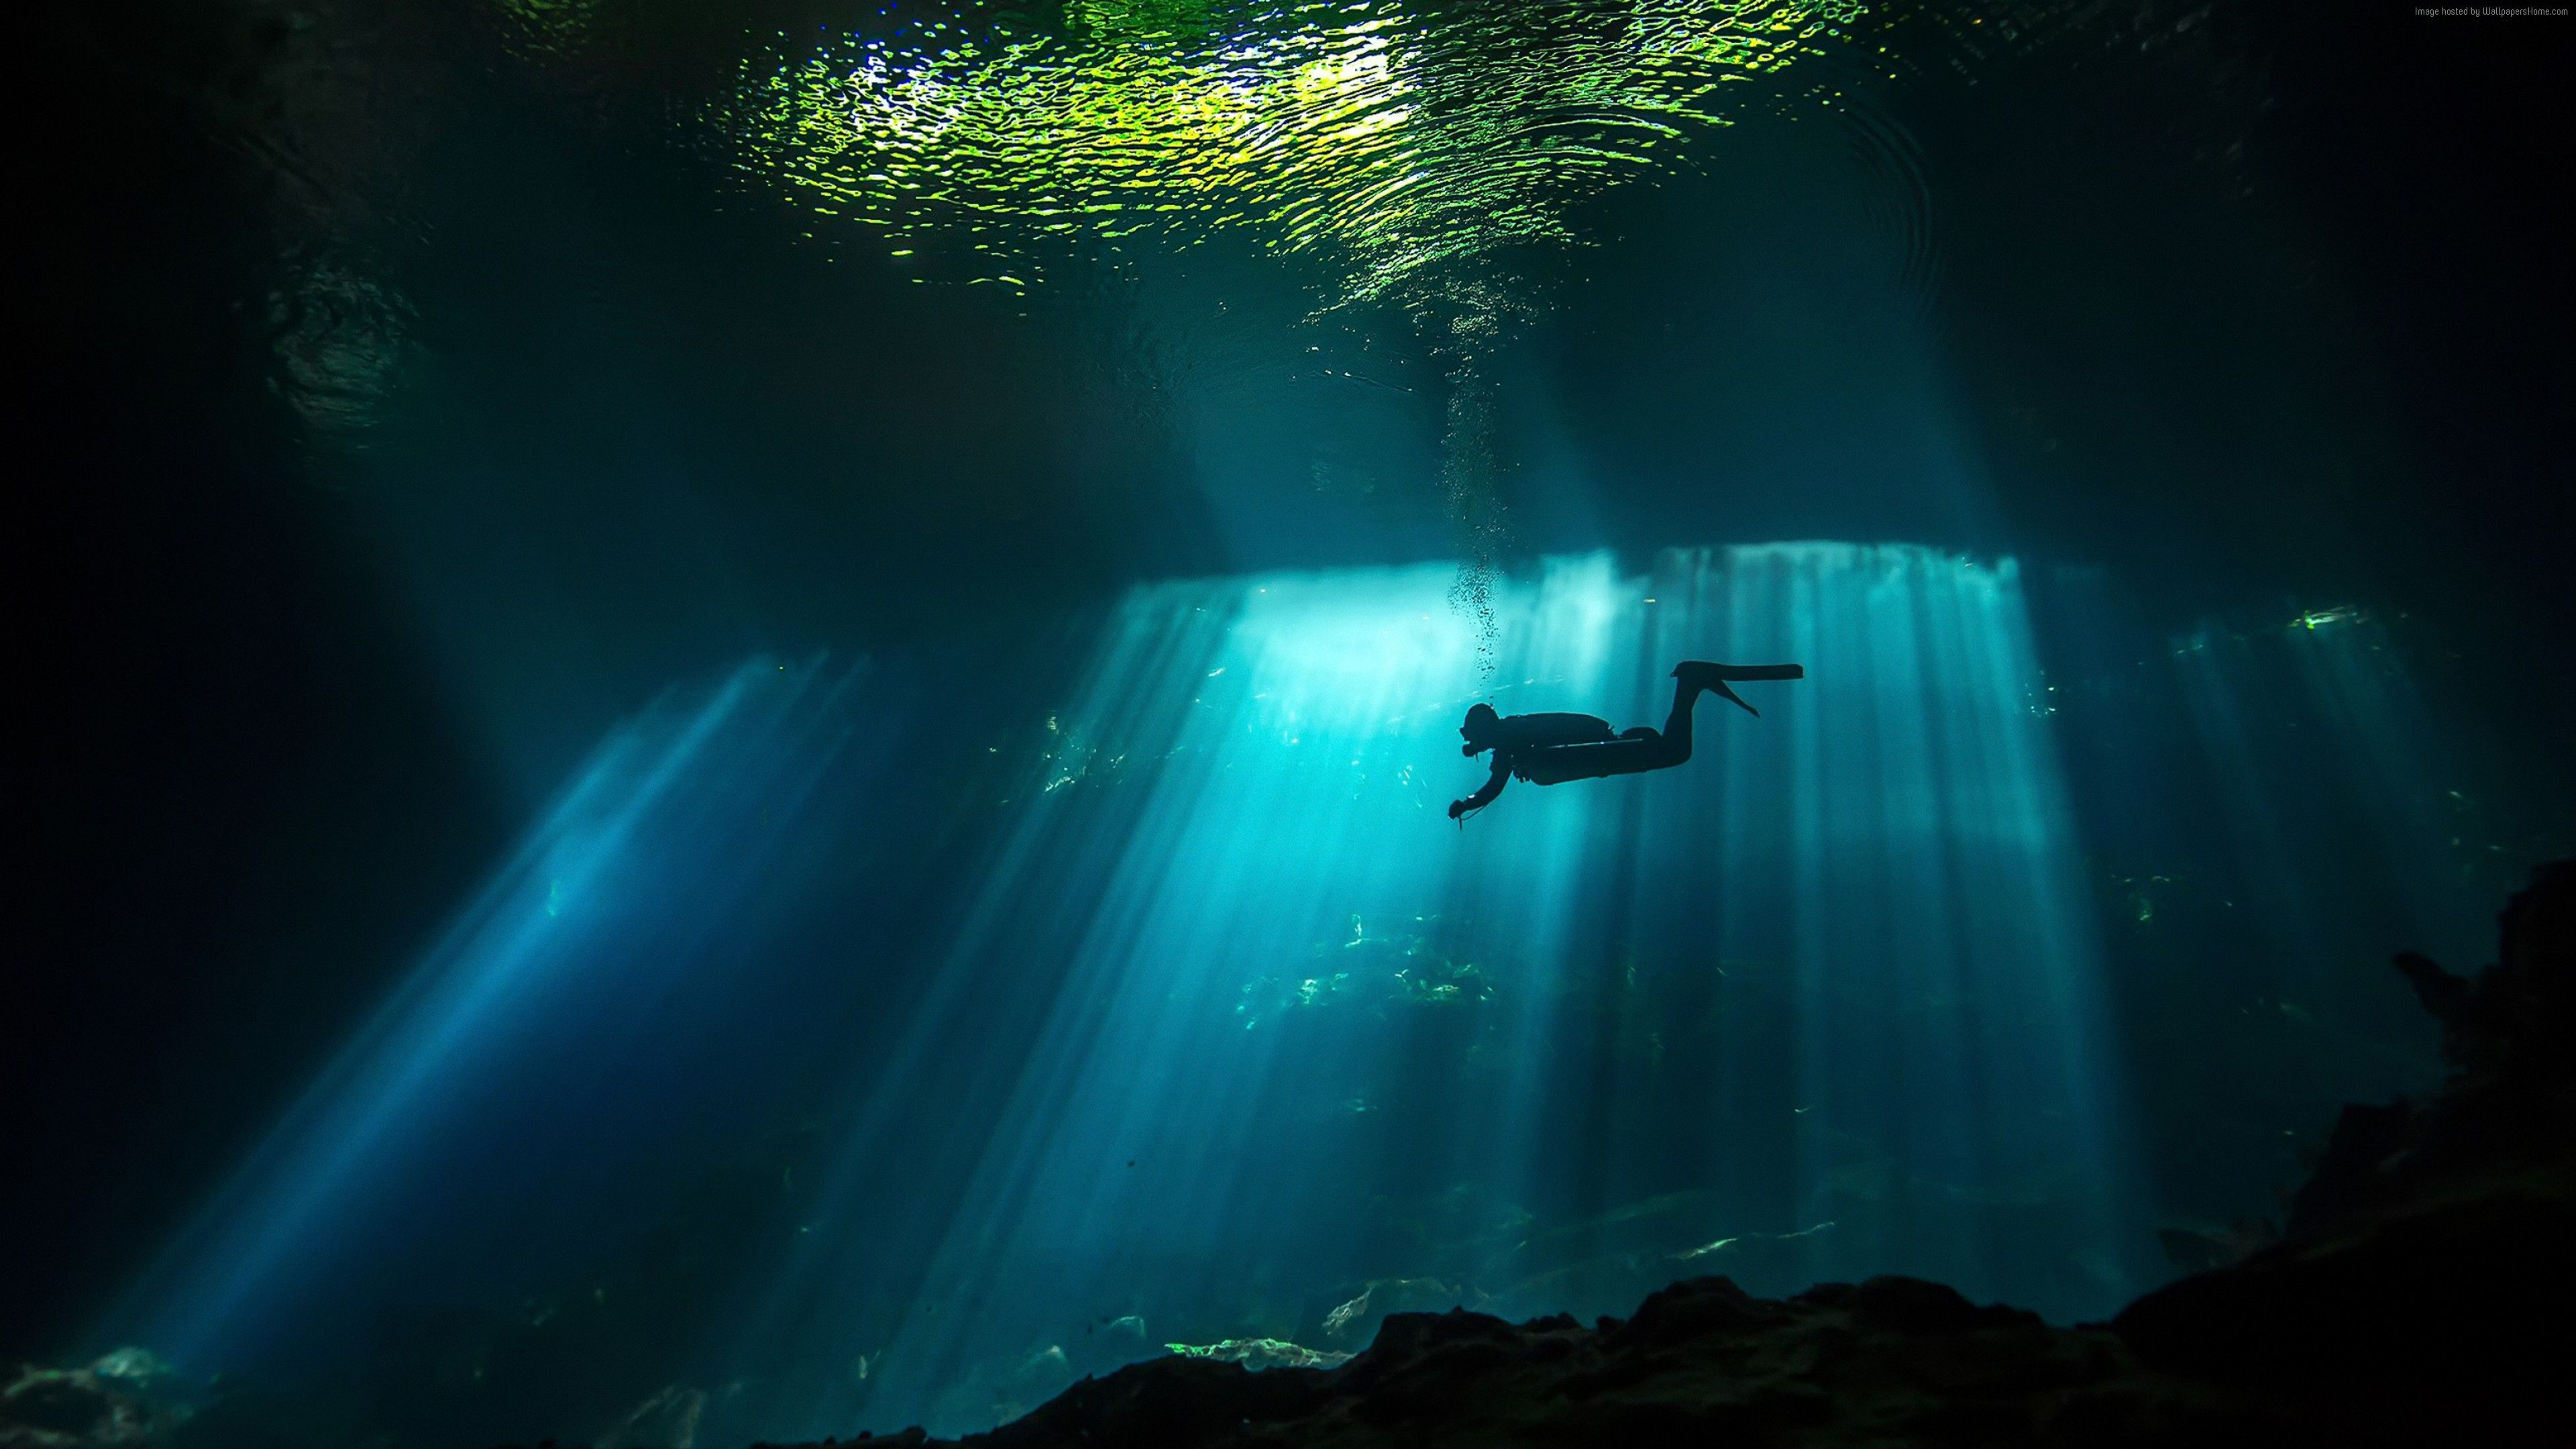 Wallpaper Diver Sunbeam Underwater 4k Travel With Images